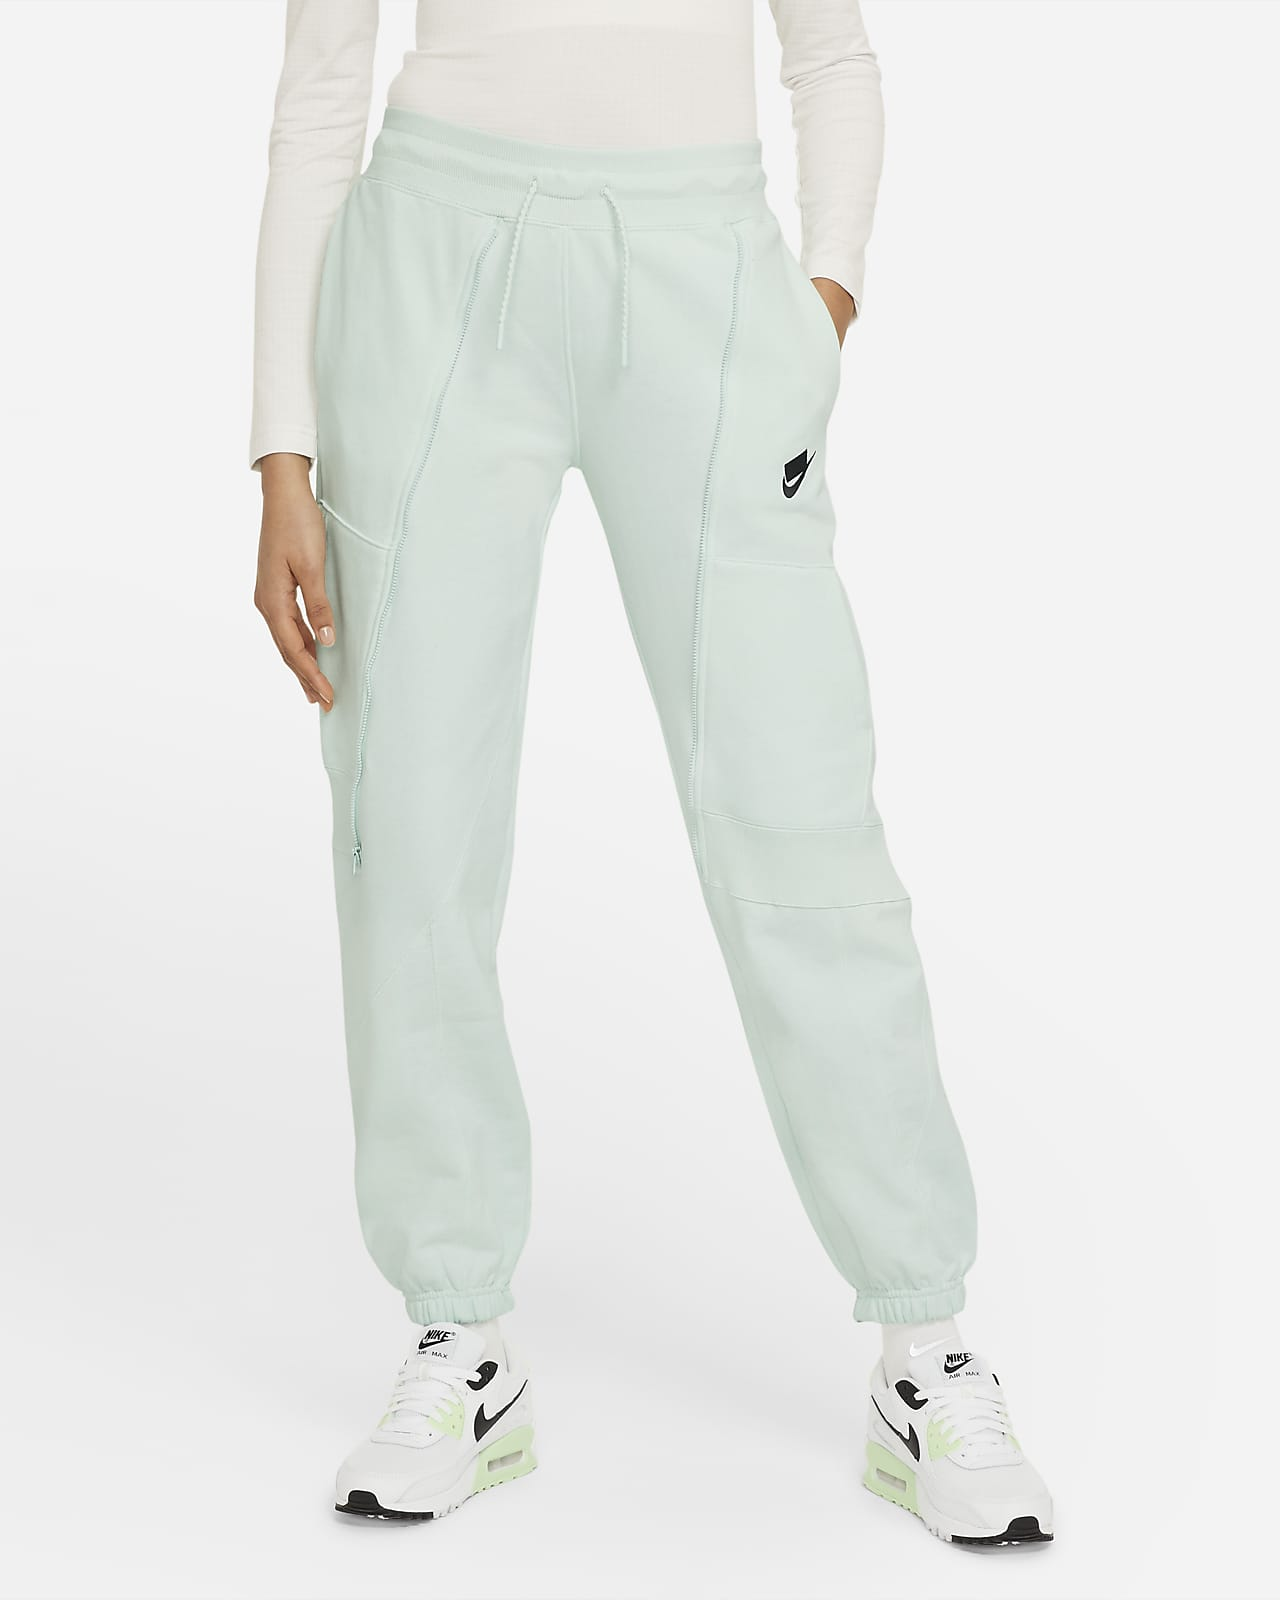 Nike Sportswear NSW Women's Pants